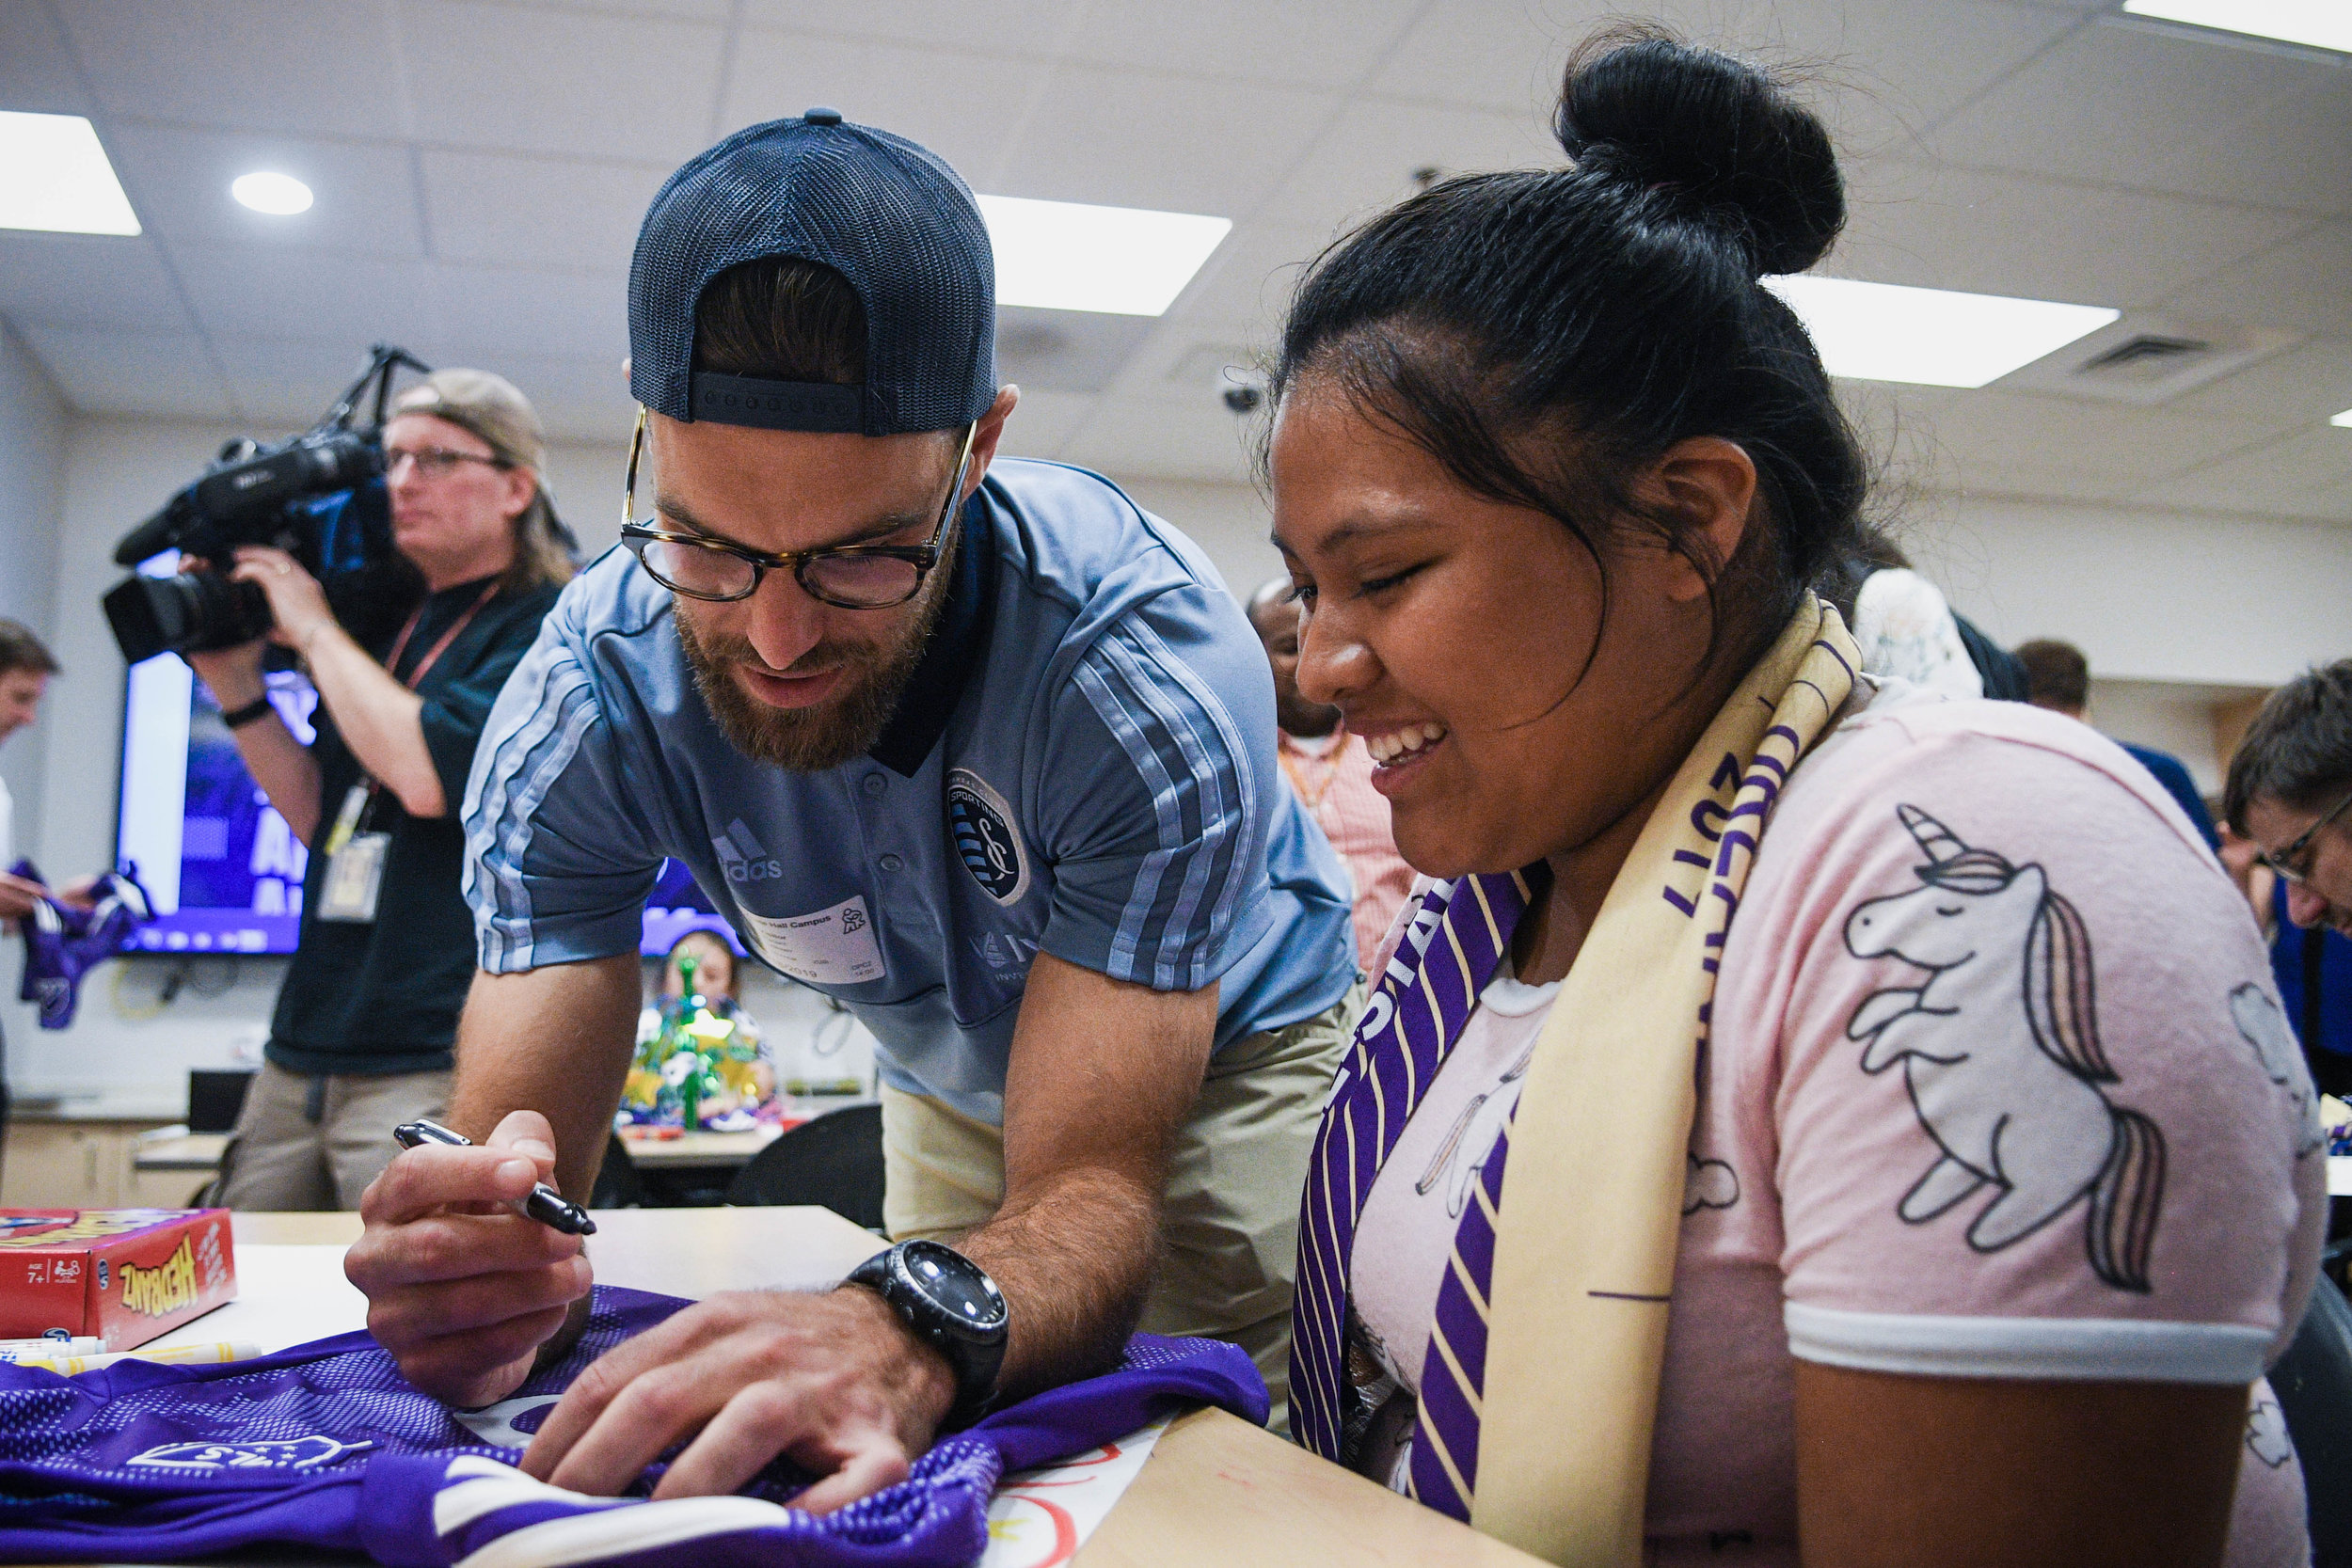 Sporting Kansas City defender Graham Zusi signs a jersey for a patient after he was surprised at Children's Mercy Hospital in Kansas City with the news he was voted on to the 2019 Major League Soccer All-Star team. This will be Zusi's 7th appearance on the all-star roster.